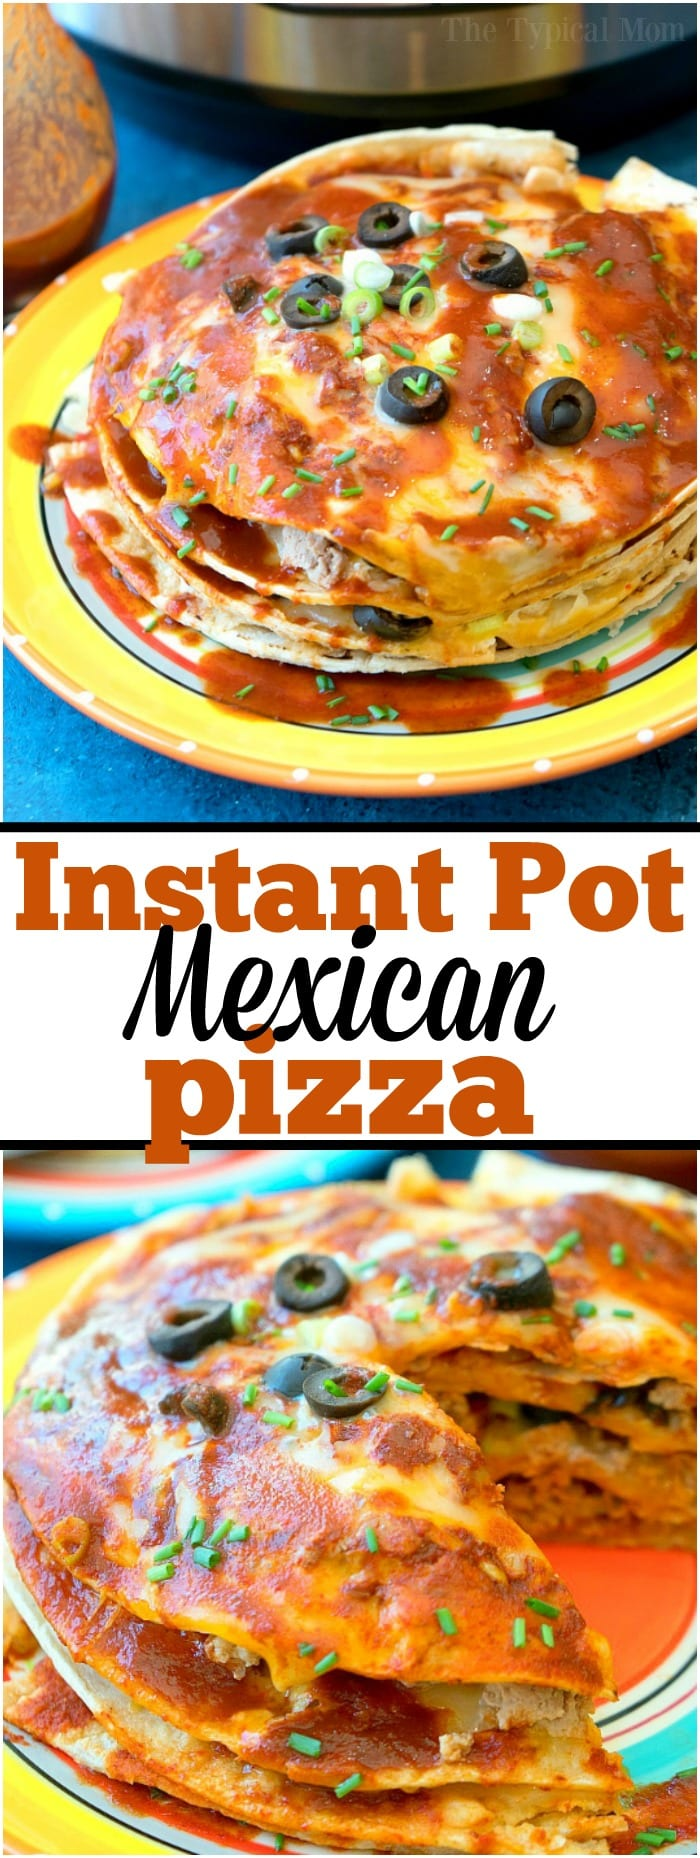 This cheesy Instant Pot Mexican pizza is amazing!! With layers and layers of cheese, sauce and ground turkey it's like a wonderful enchilada lasagna!